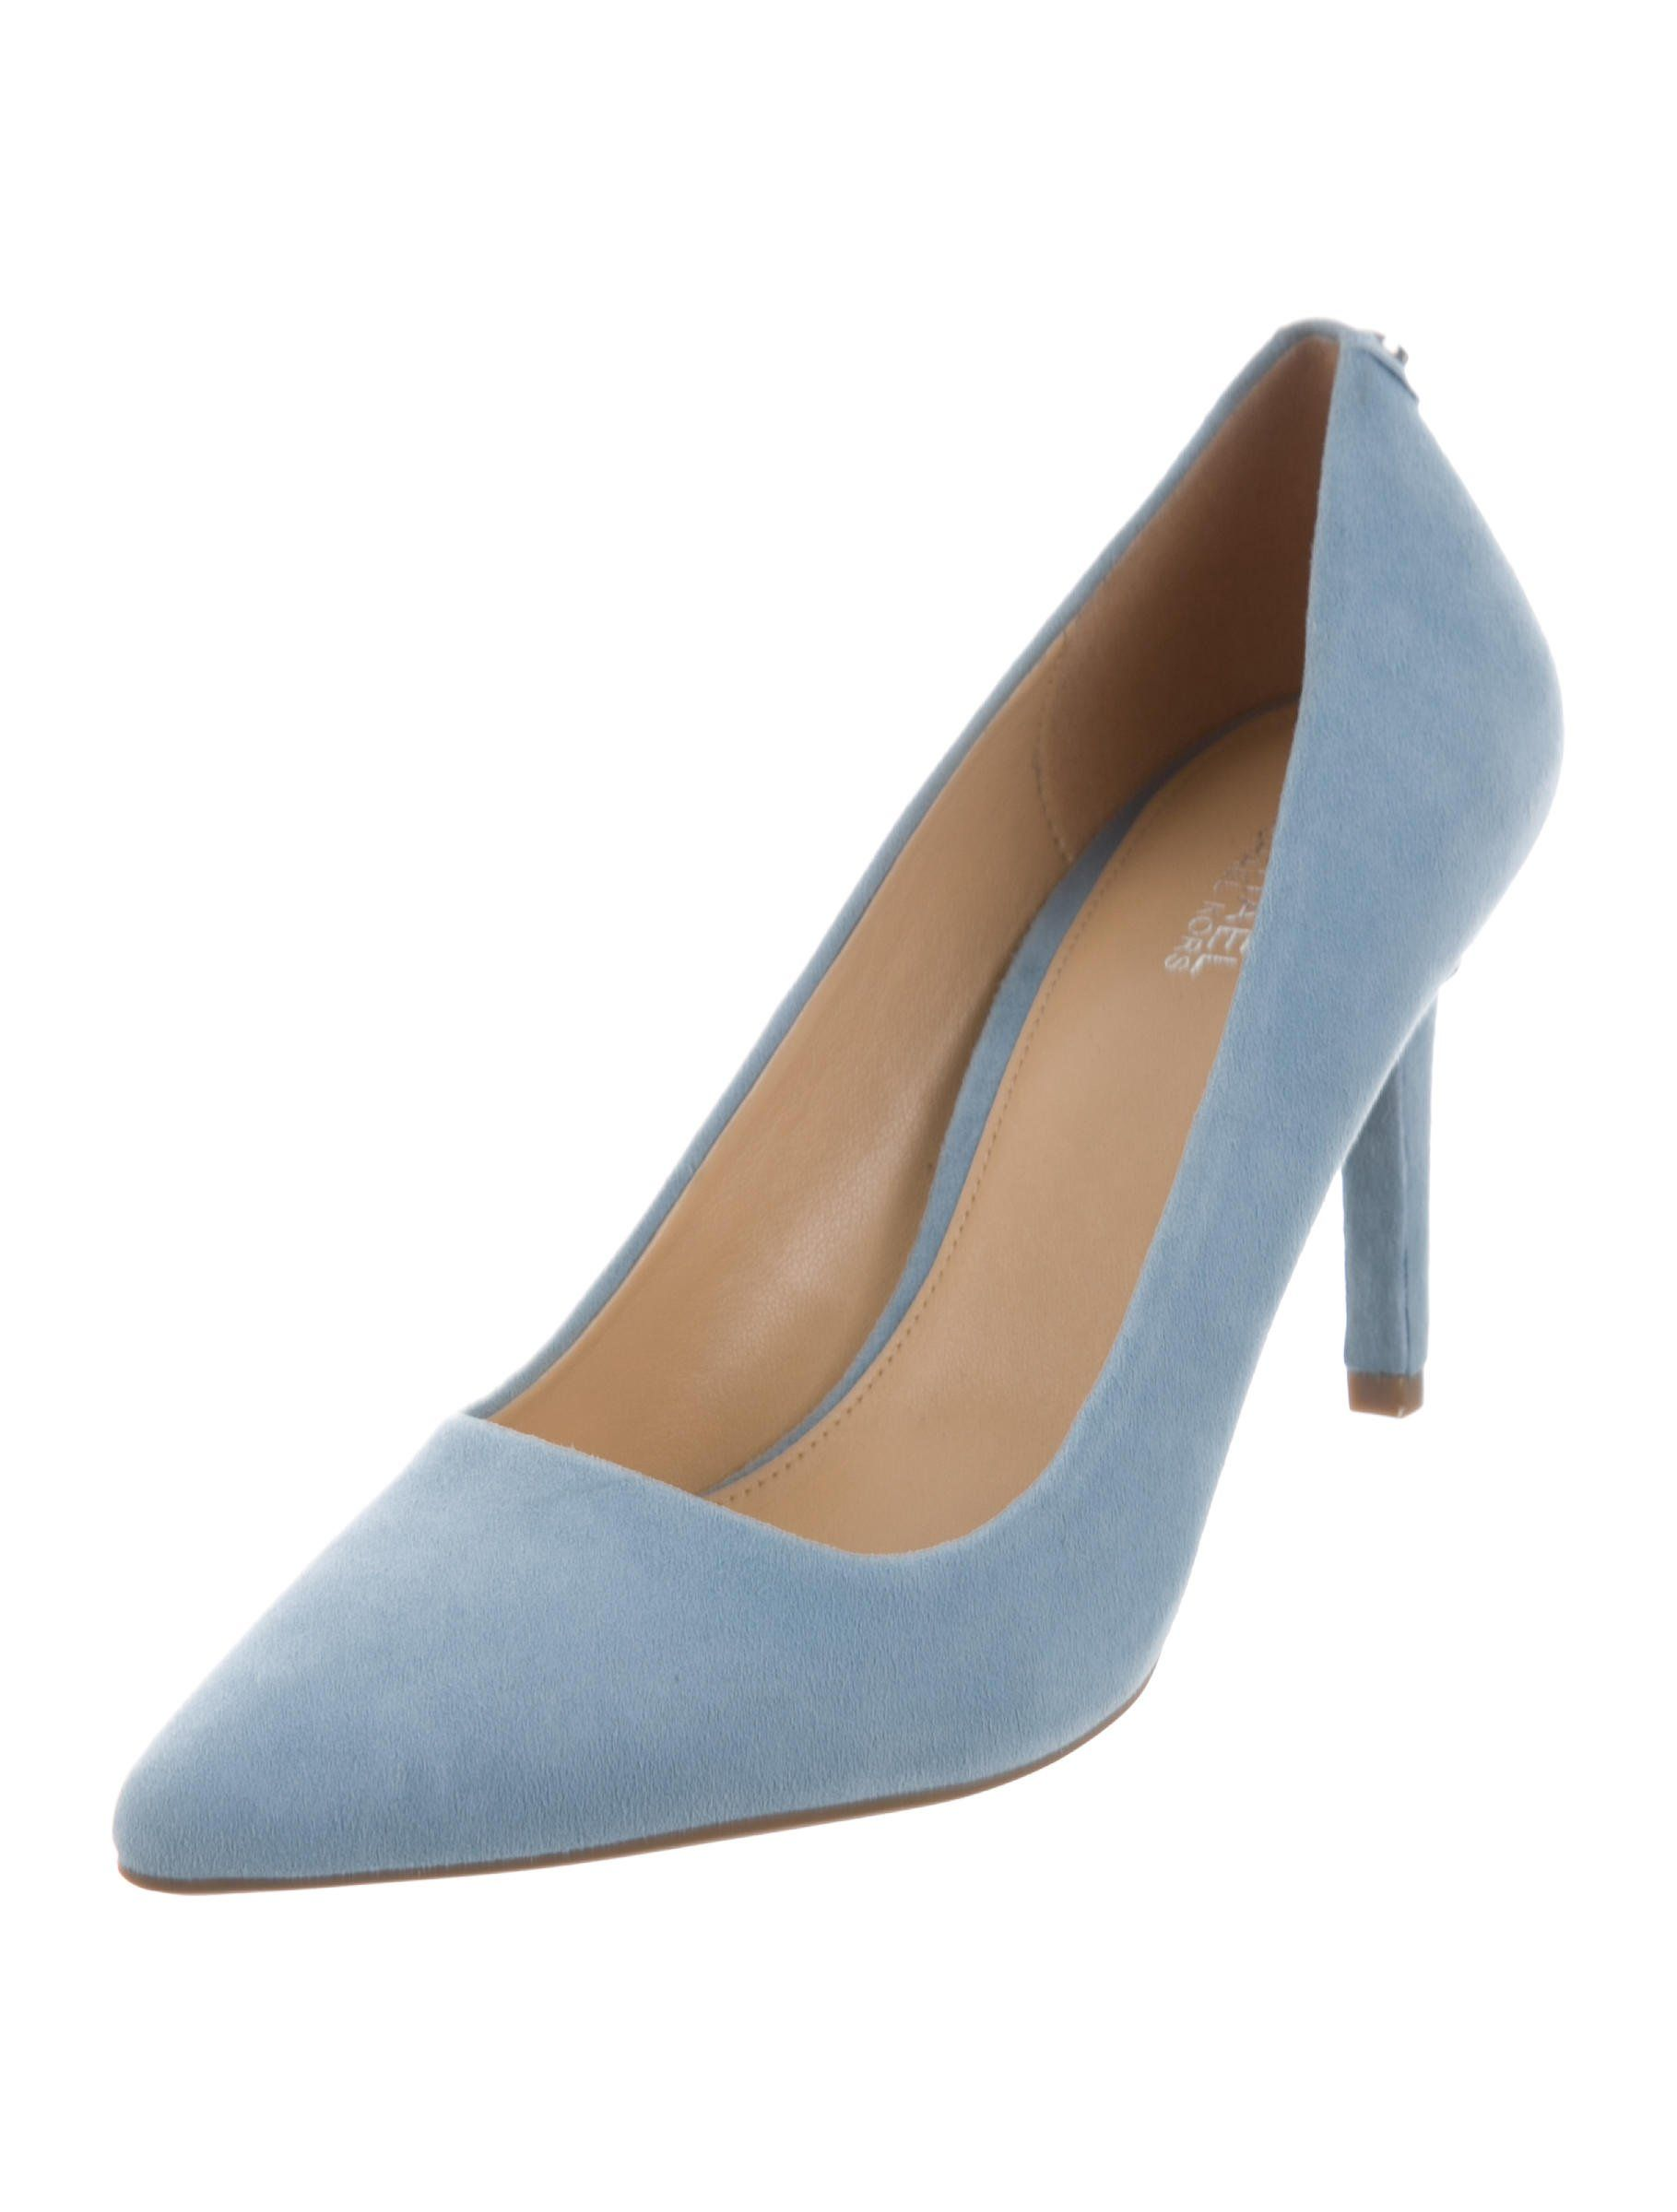 6684a3b816 Sky blue suede Michael Michael Kors Dorothy Flex pumps with pointed toes  and covered heels. Includes box.